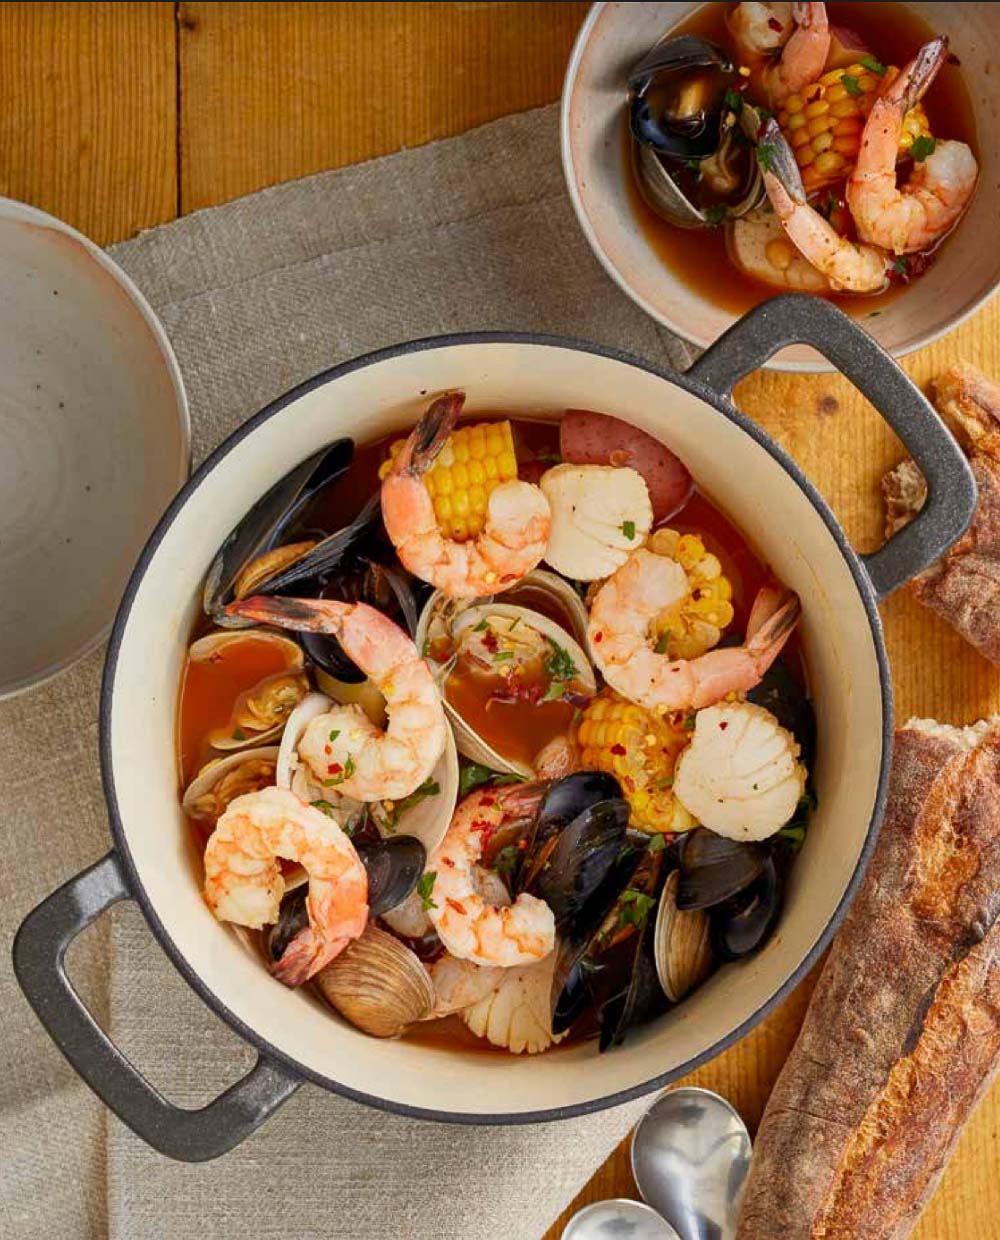 Zuppa Di Pesce or Fish Soup, whatever you call it, is a rustic seafood stew is simple, wholesome, and comforting. Get into your pajamas, put on your favorite show, and enjoy a bowl of this seasoned seafood stew.